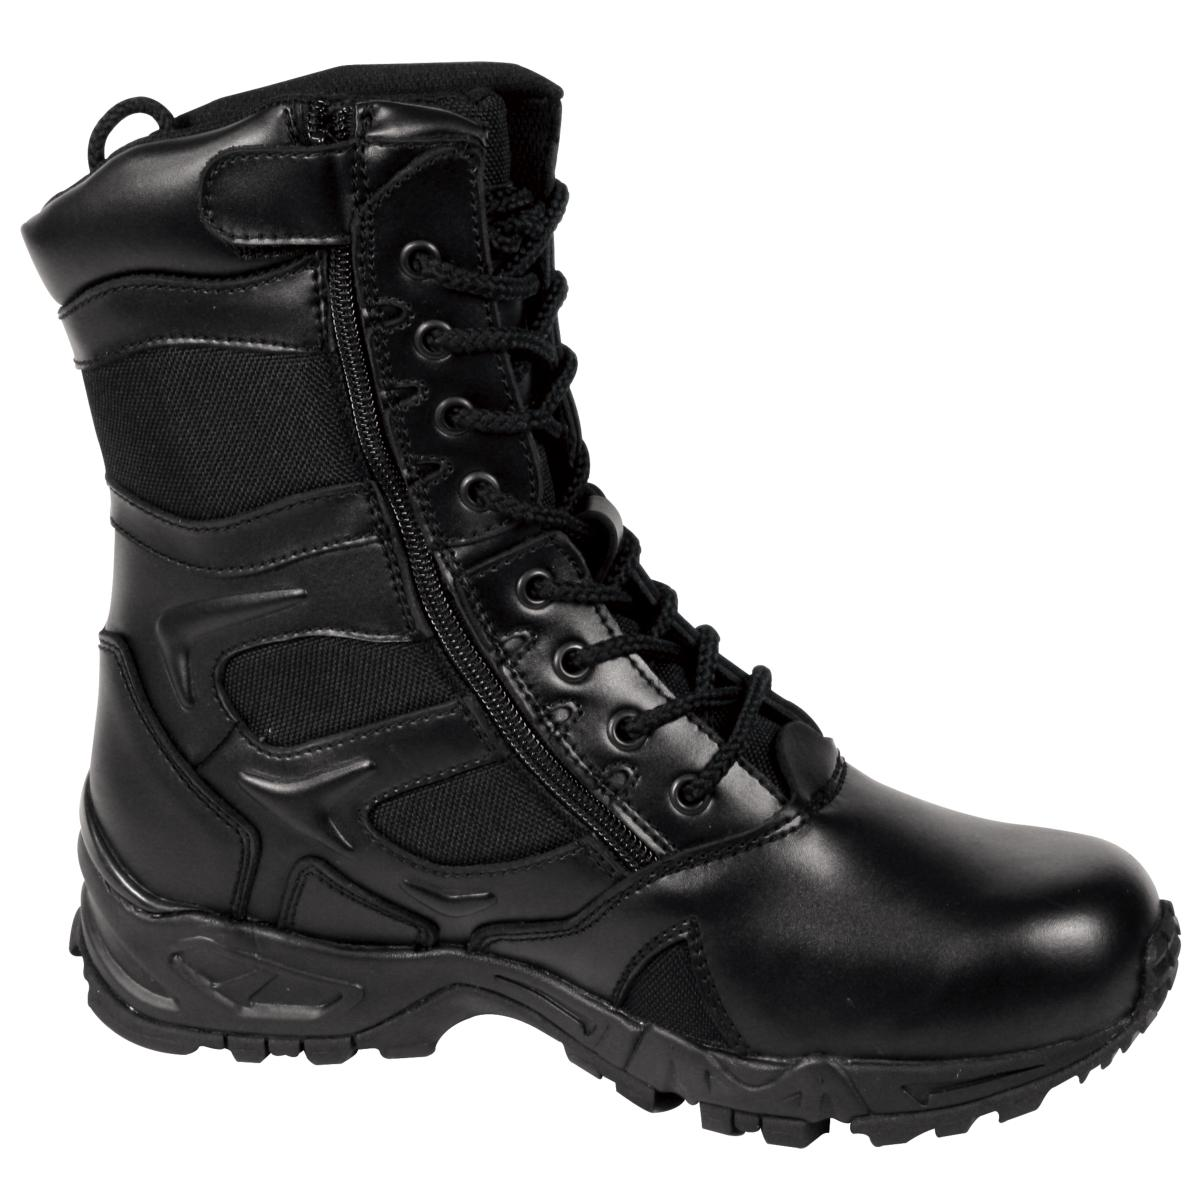 "Rothco 5358 Forced Entry Deployment Boot with side Zipper, 8"" Tactical Boot"